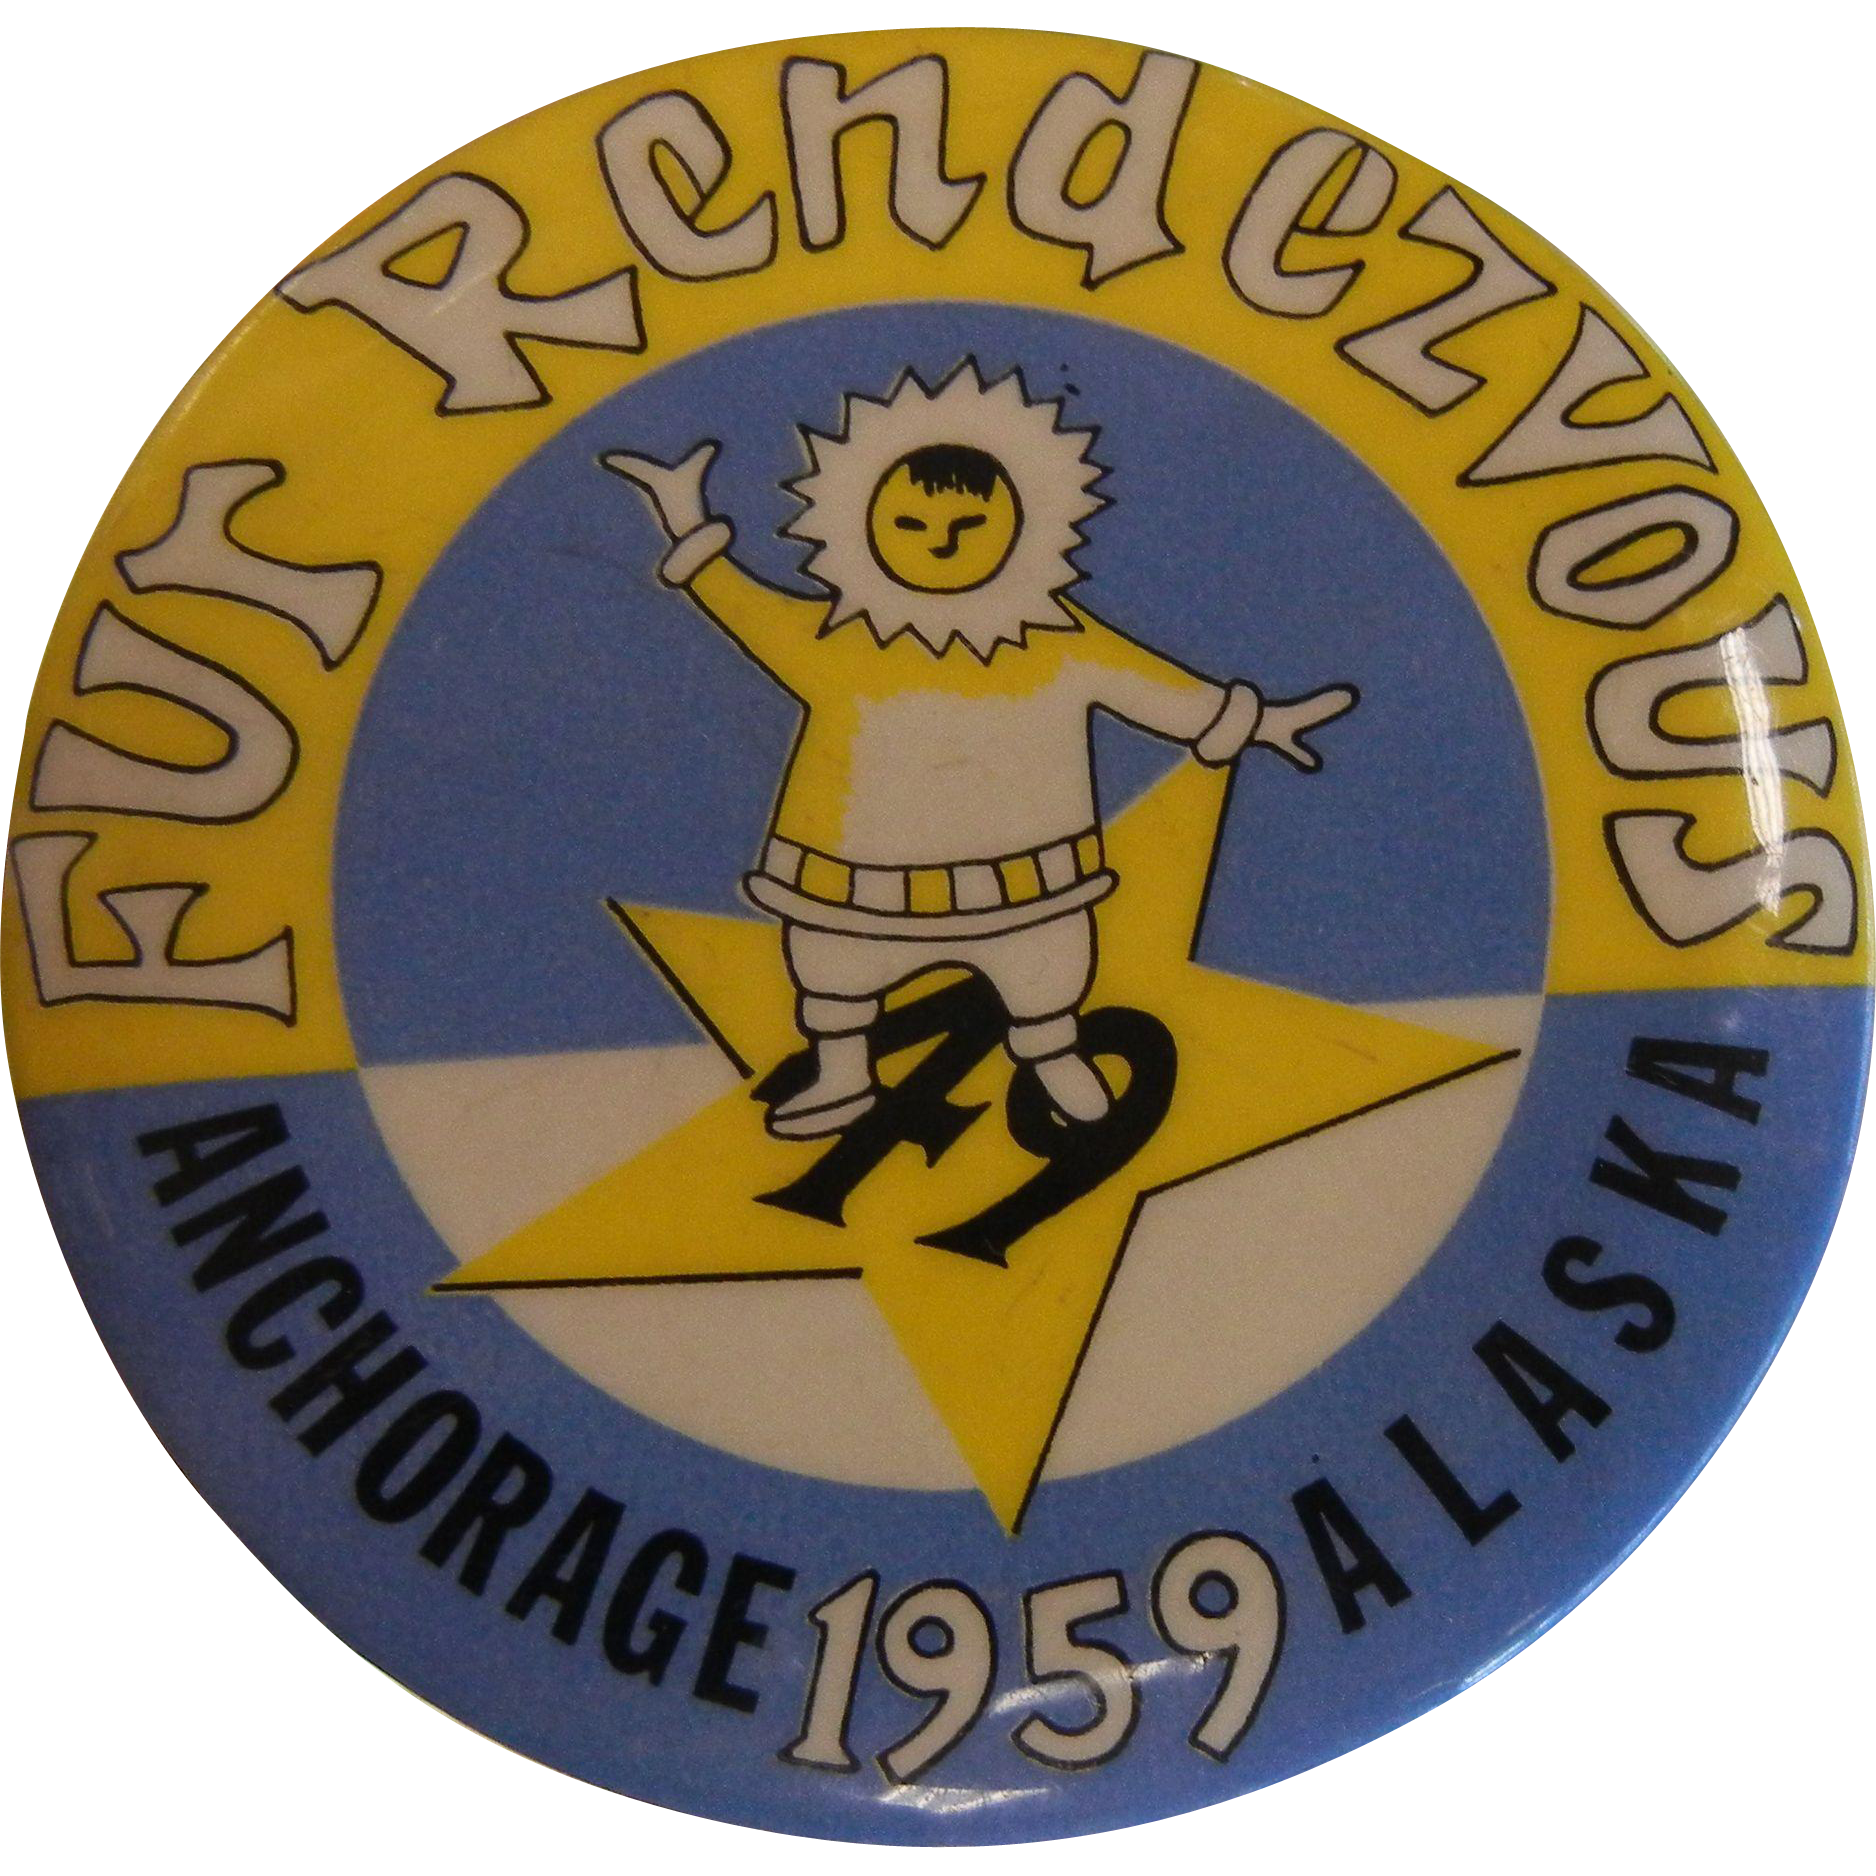 Vintage 1959 Fur Rendezvous Button from Anchorage, Alaska